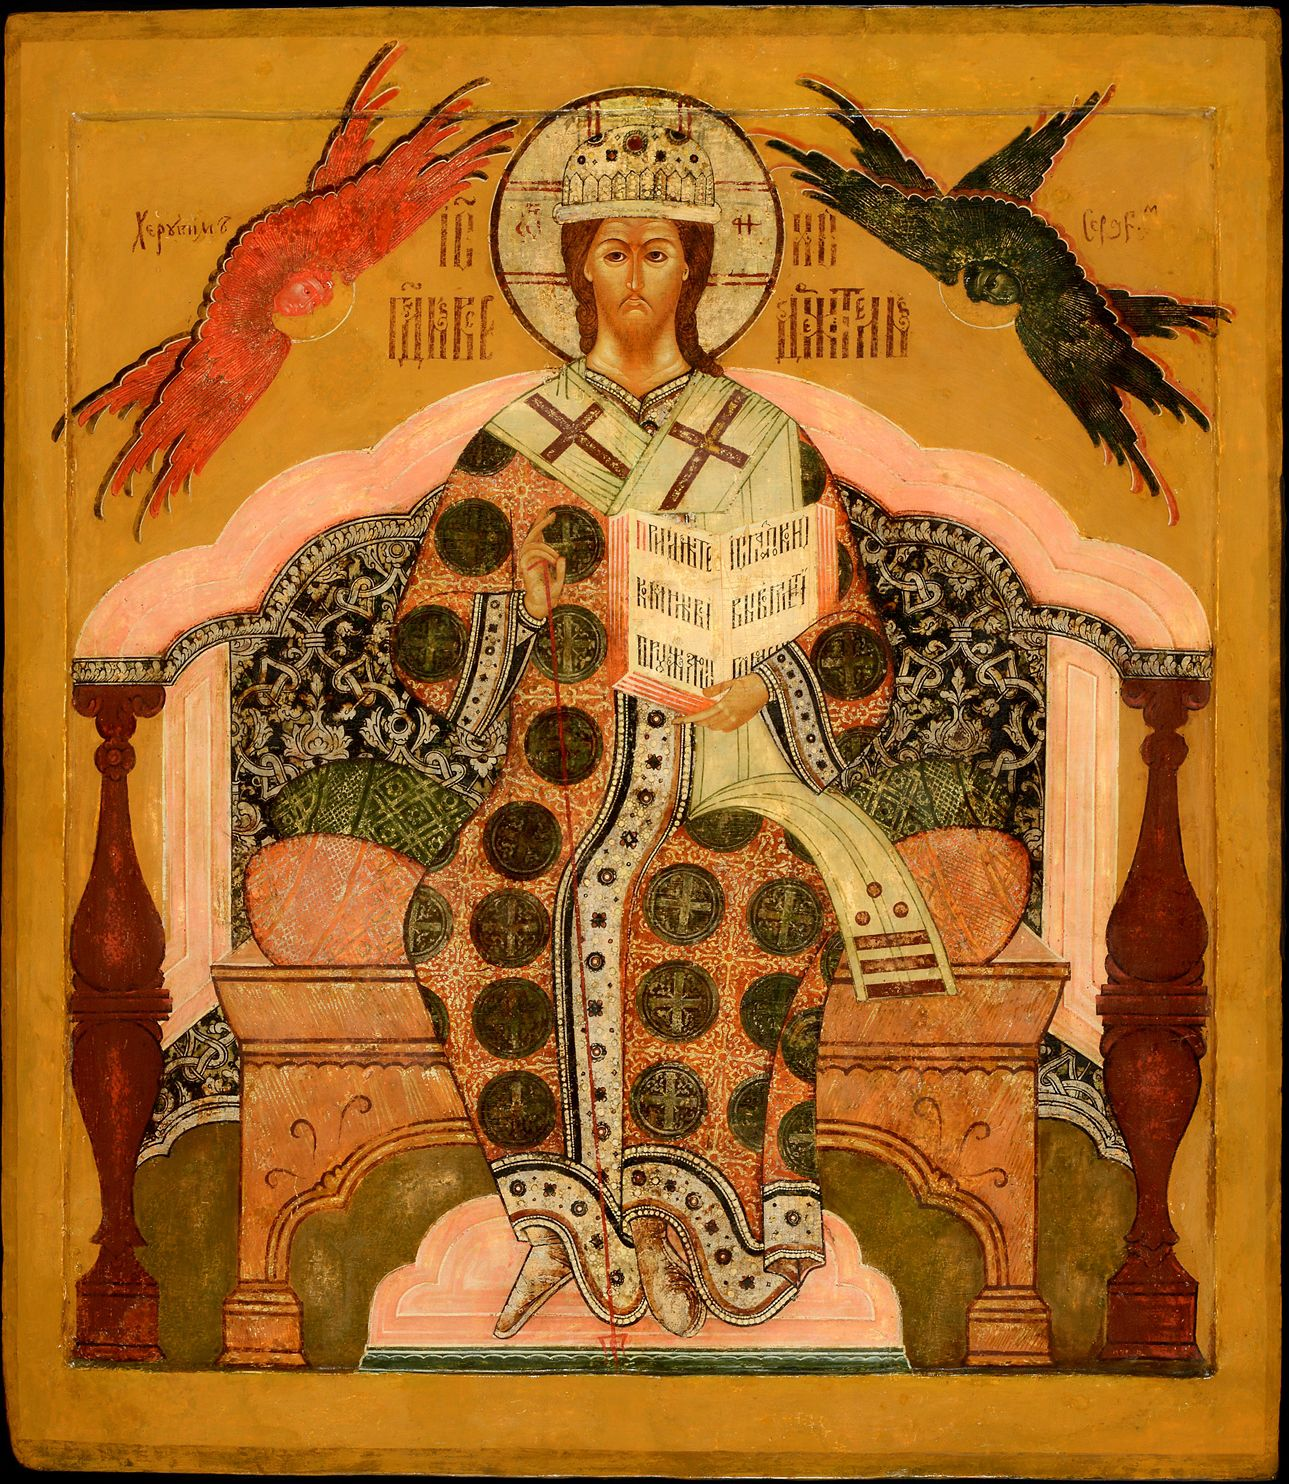 Christ Enthroned as High Priest, Russia, Kostroma region, Mid 17th cent. 98 x 85 cm. Collection: Jan Morsink Ikonen, Amsterdam, The Netherlands. A good example of a style that leans more towards abstraction.